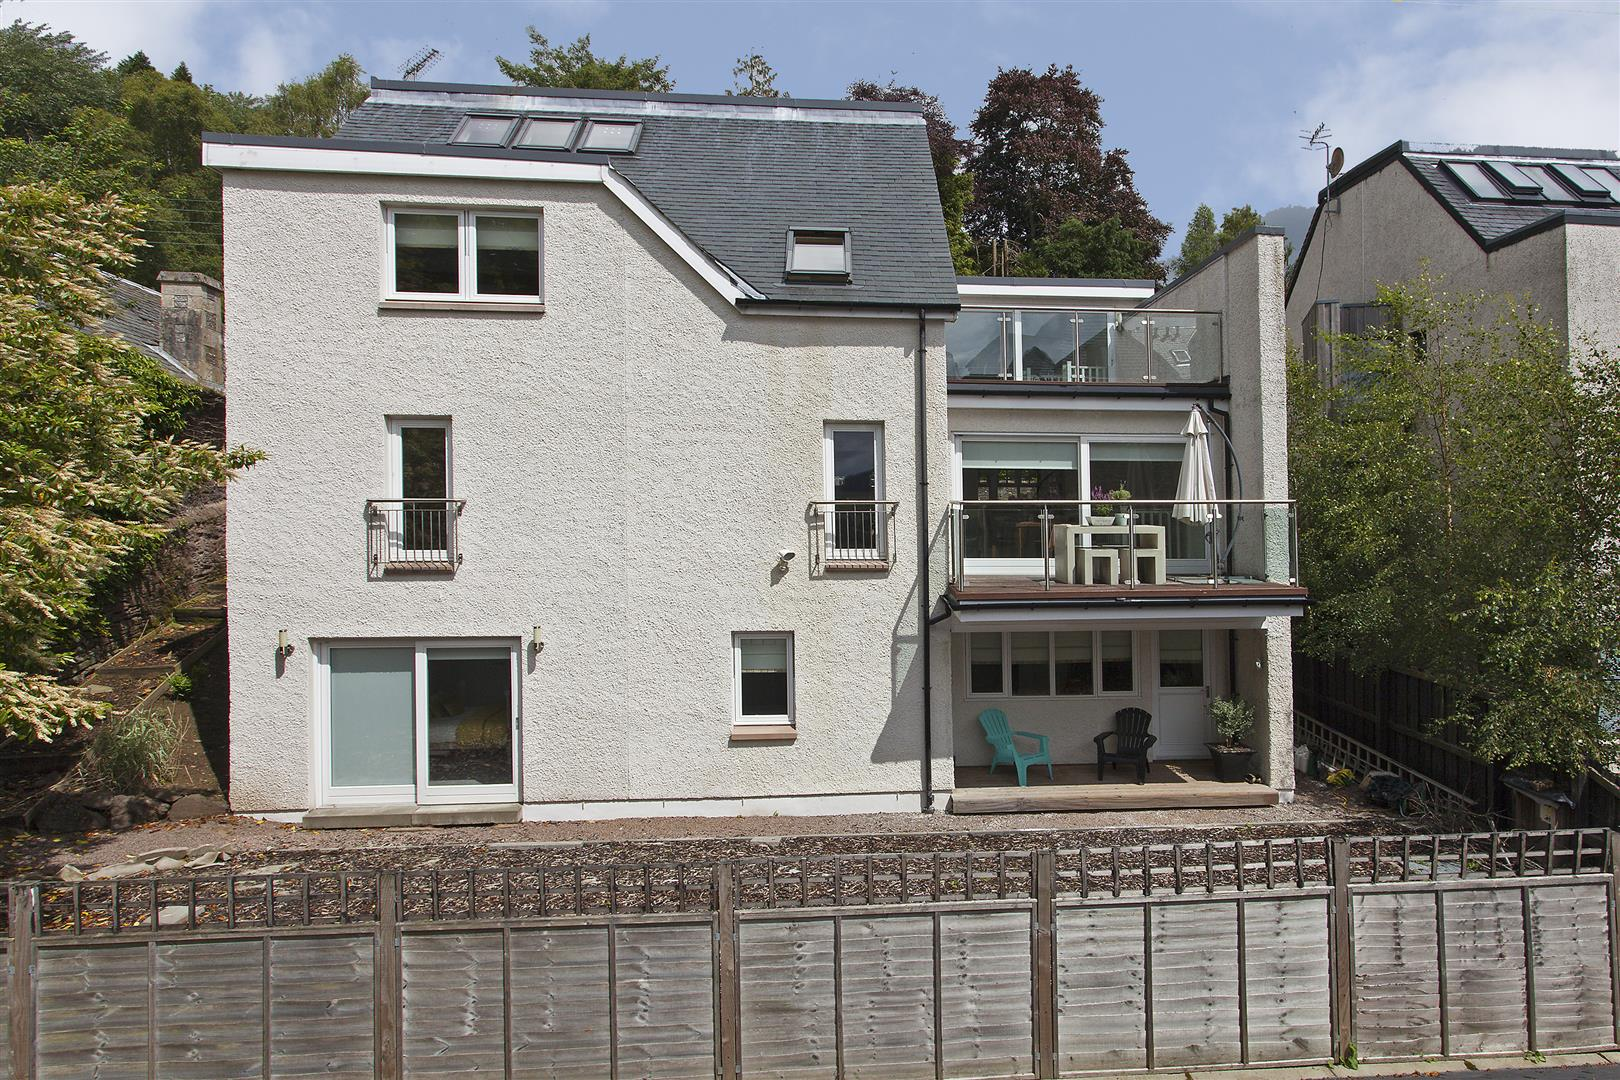 St. Cephas, Gwydyr Road, Crieff, Perthshire, PH7 4BS, UK